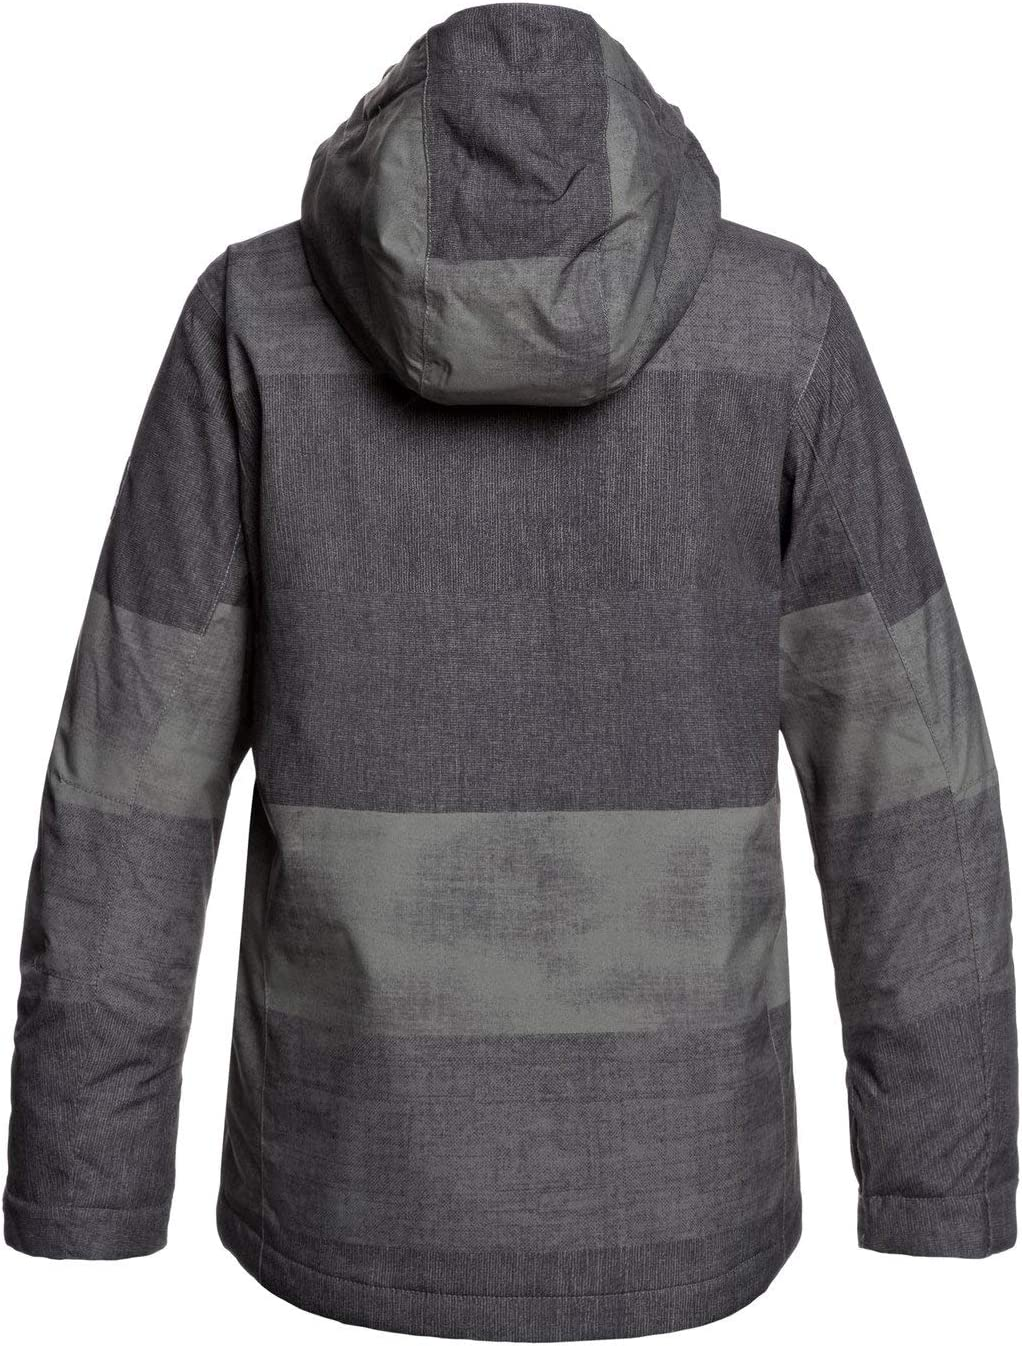 Quiksilver Boy/'s 8-16 Mission Engineered Snow Jacket